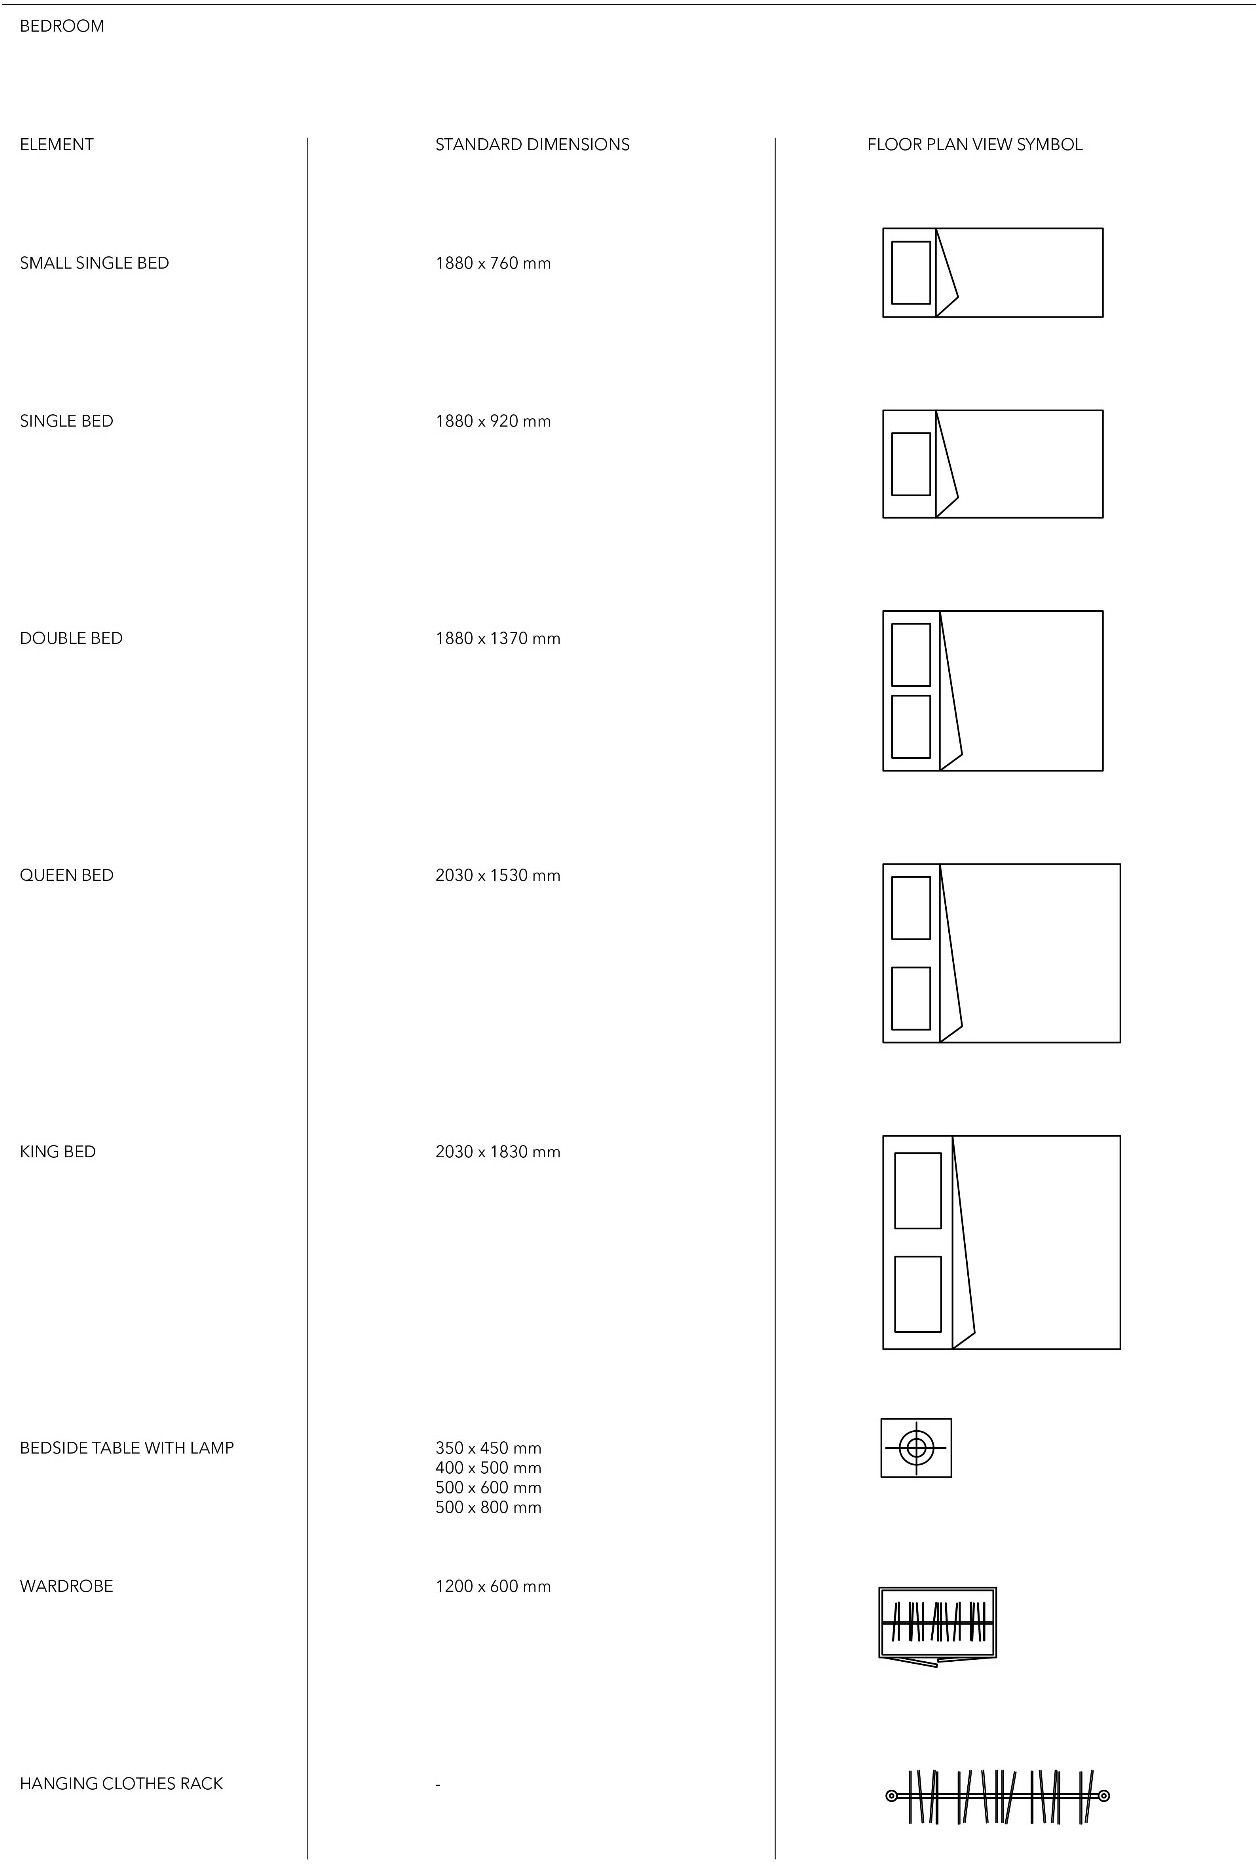 floor plan furniture symbols bedroom. floor plan view furniture symbols bedroom a